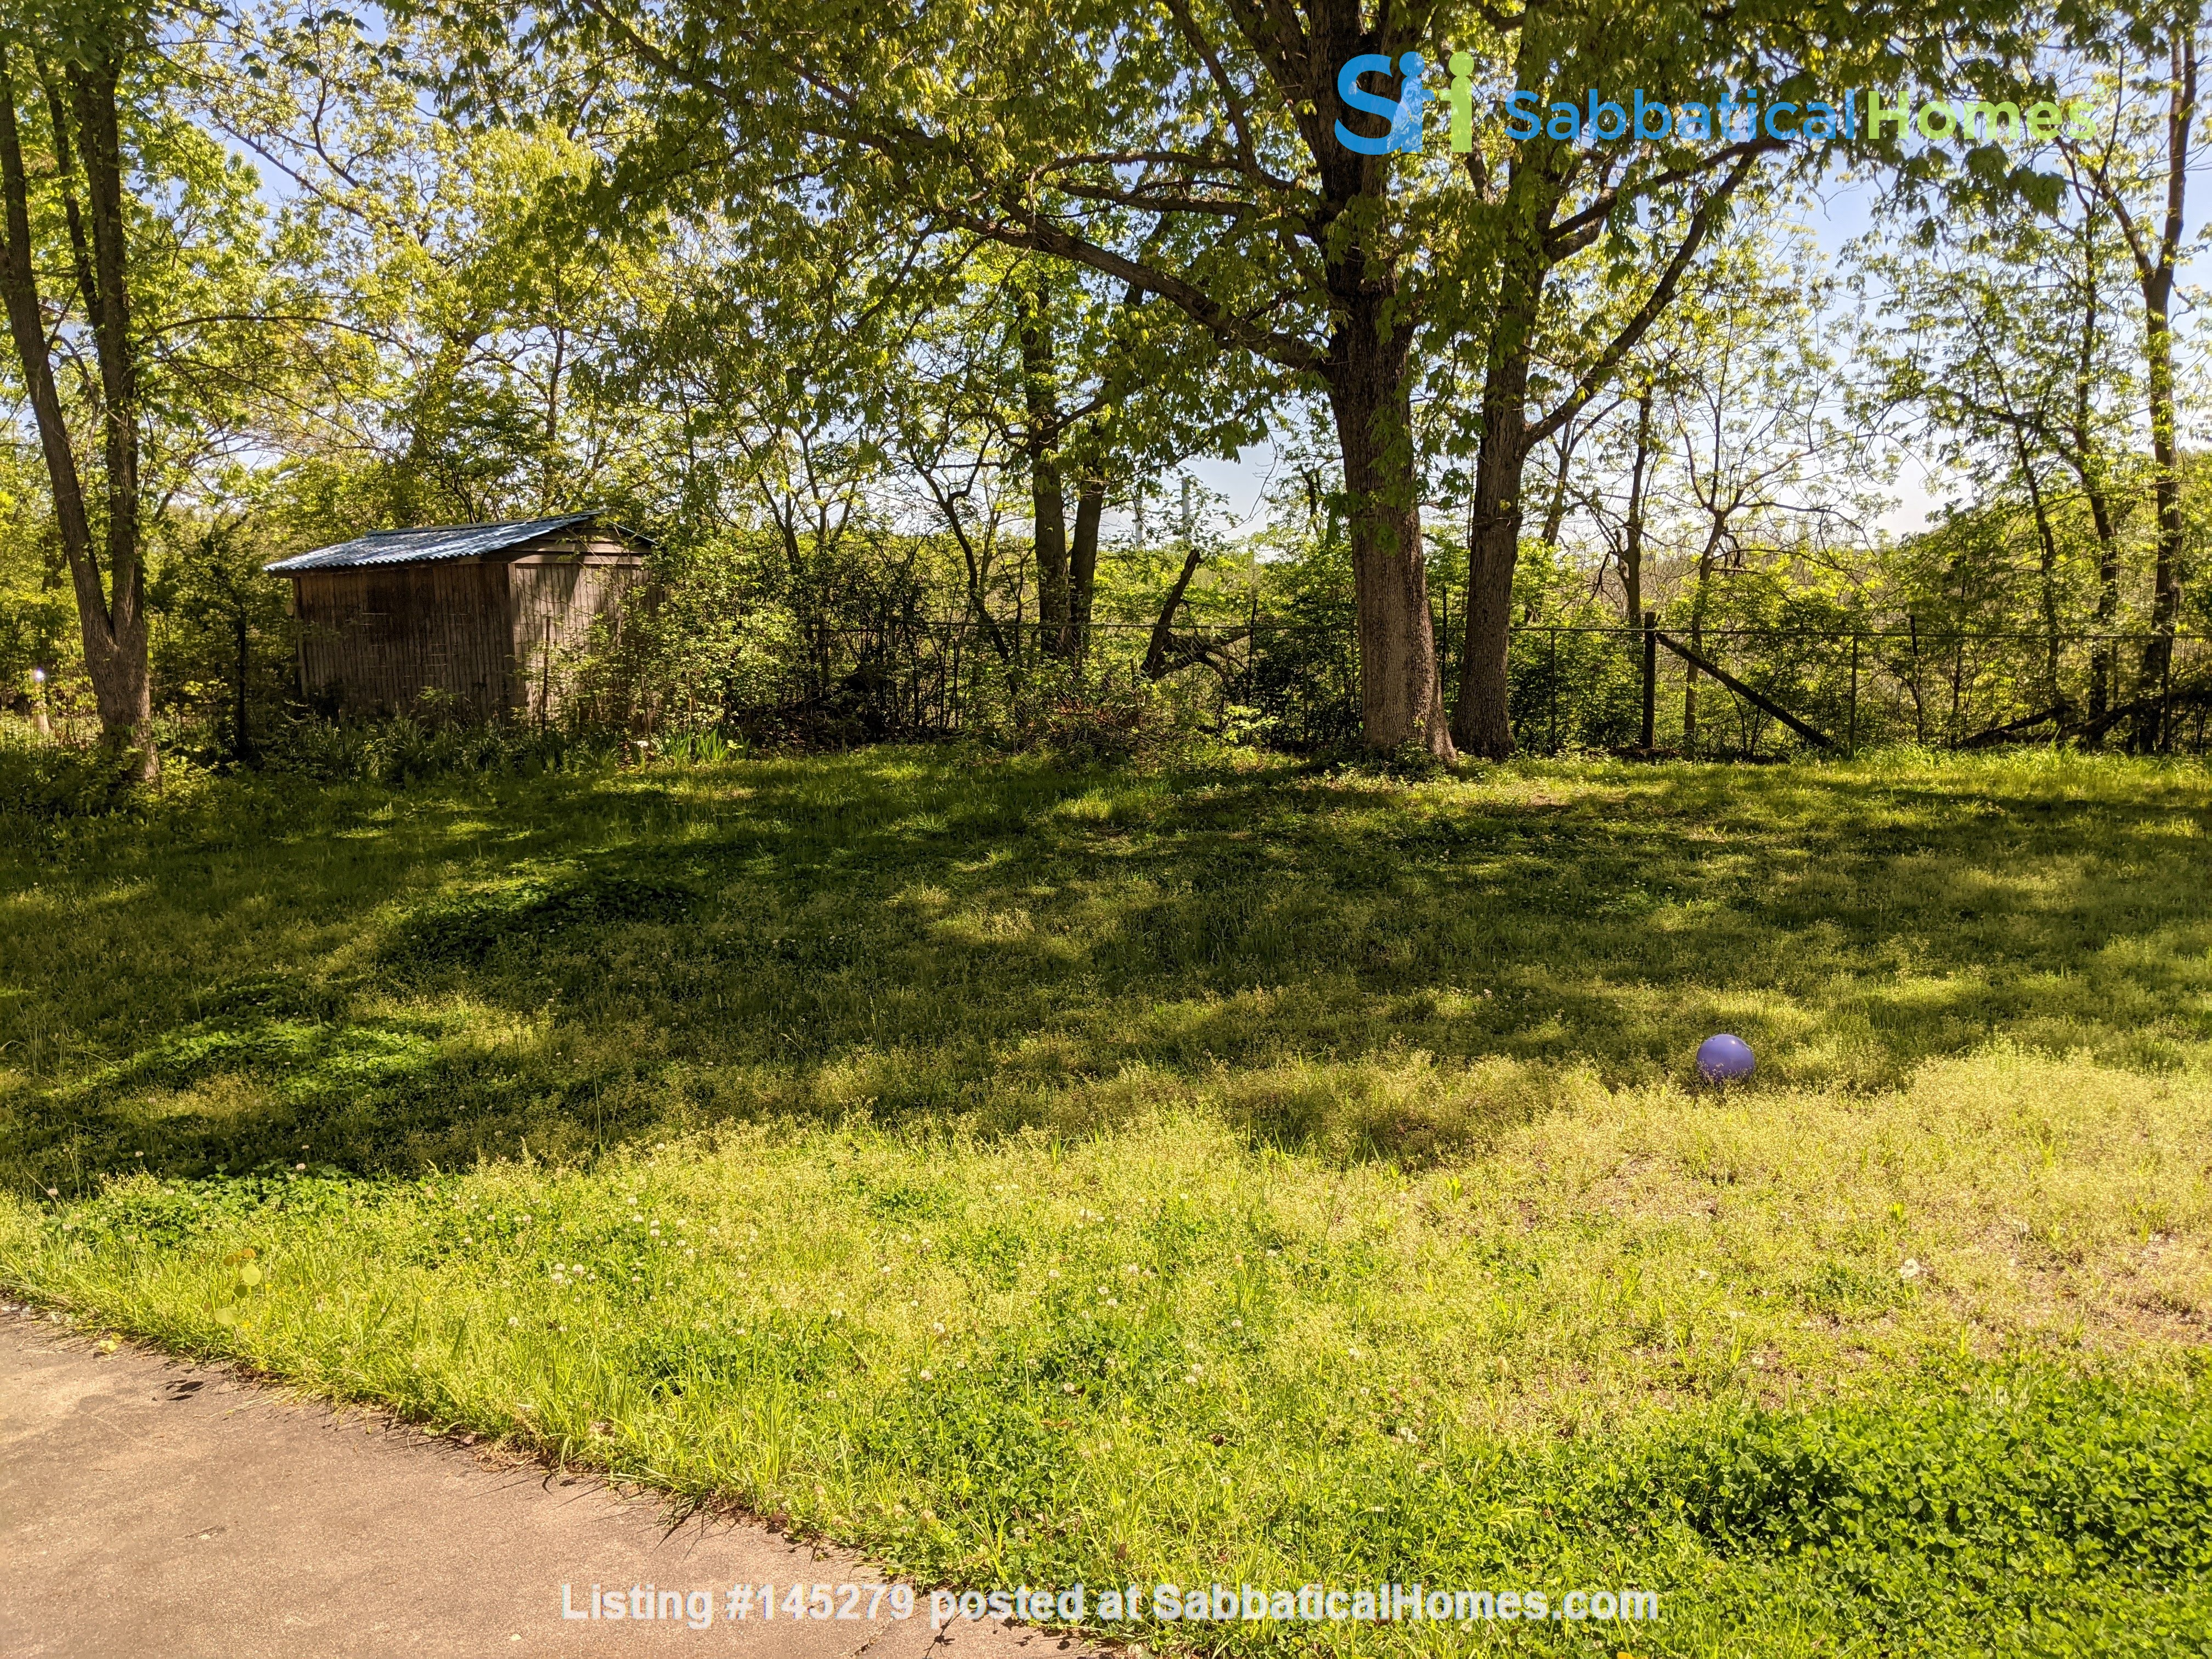 Looking to rent out our little white house on the hill Home Rental in Columbia, Missouri, United States 9